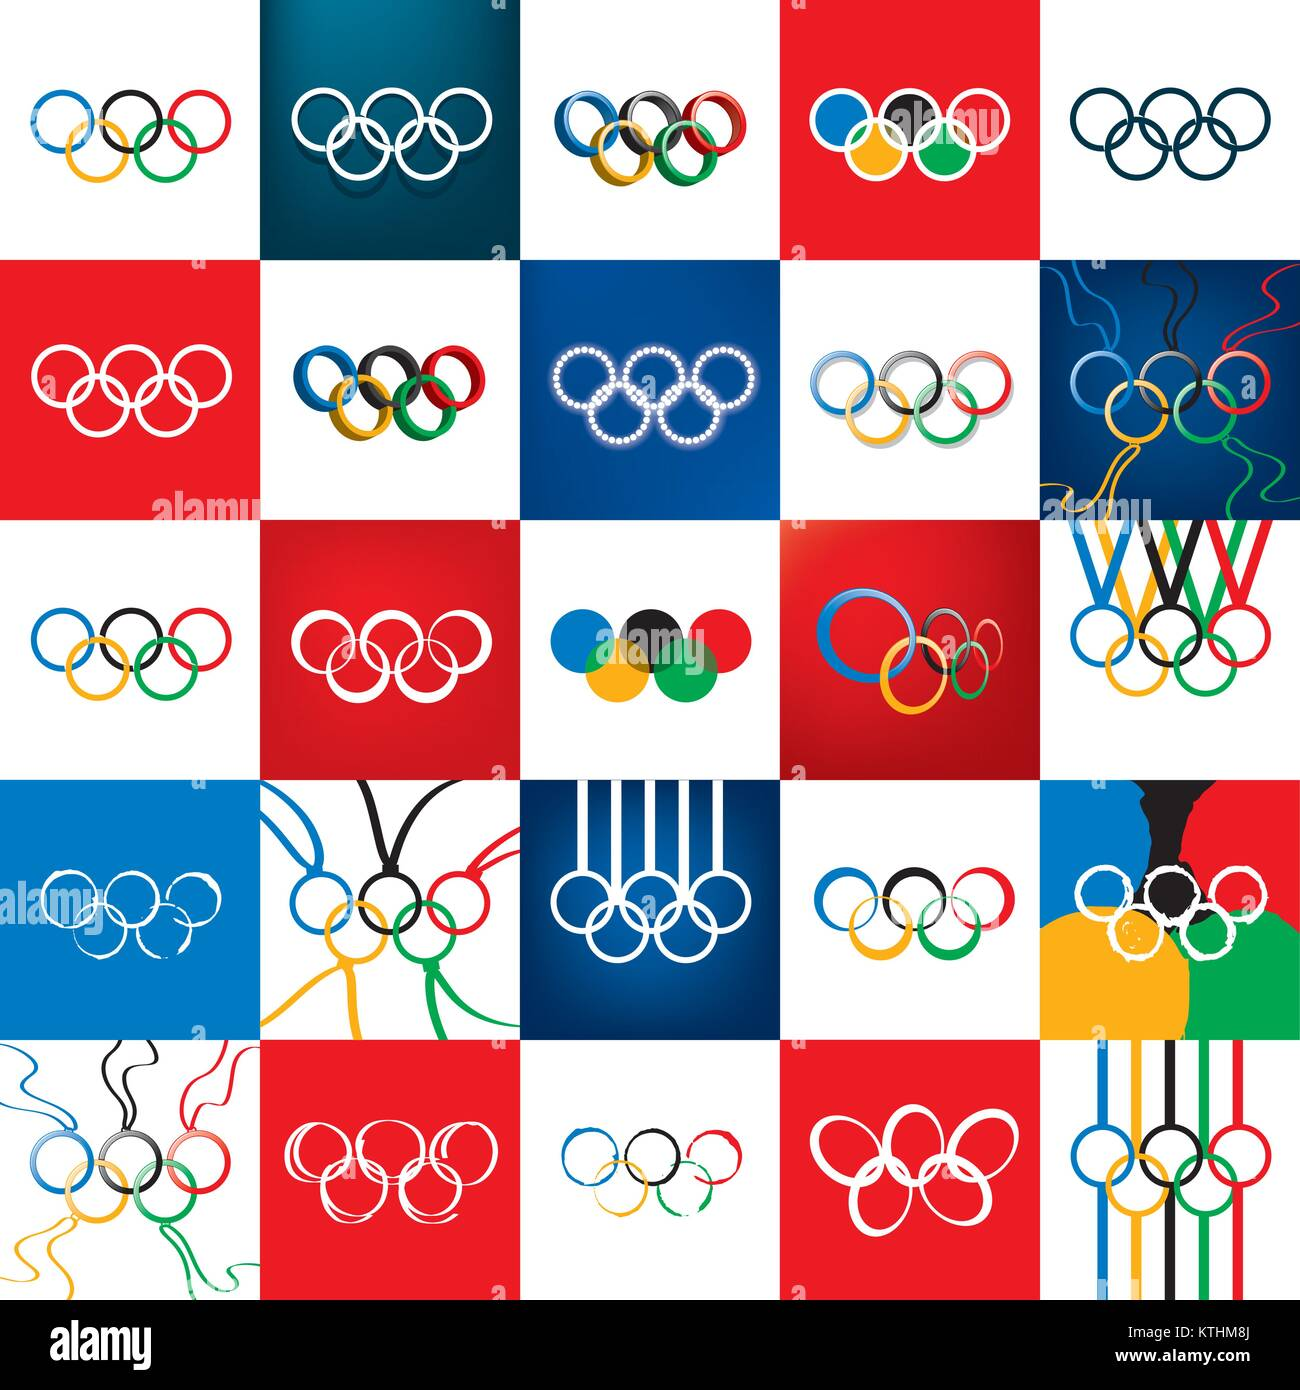 sign of the Olympic rings. Vector illustration. Sport - Stock Vector